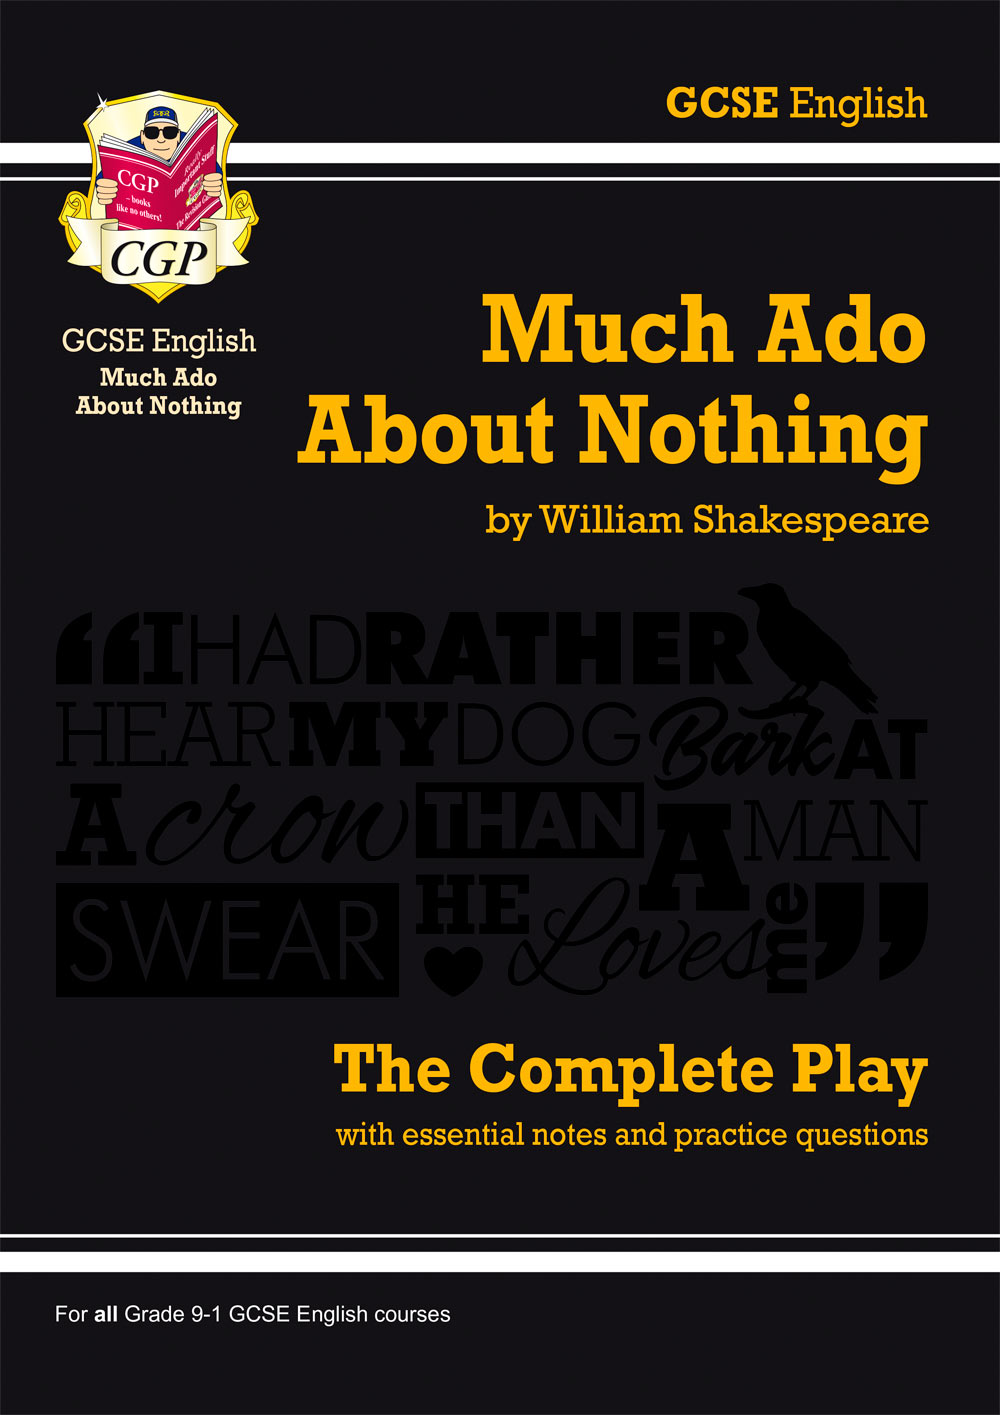 EPMA43 - Grade 9-1 GCSE English Much Ado About Nothing - The Complete Play